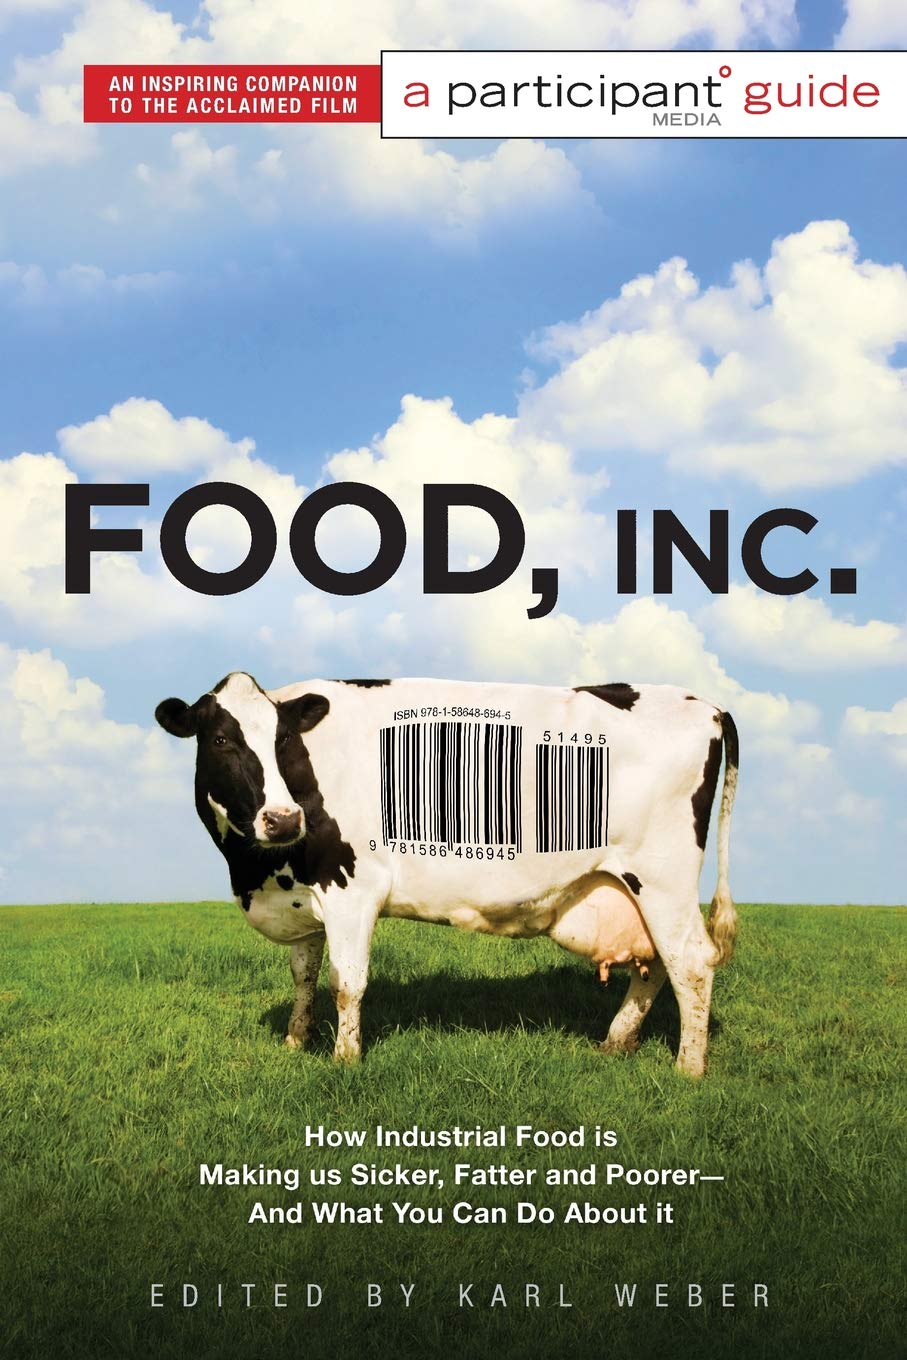 "food, inc. - By Karl WeberFood, Inc. is guaranteed to shake up our perceptions of what we eat. This powerful documentary deconstructing the corporate food industry in America was hailed by Entertainment Weekly as ""more than a terrific movie—it's an important movie."" Aided by expert commentators such as Michael Pollan and Eric Schlosser, the film poses questions such as: Where has my food come from, and who has processed it? What are the giant agribusinesses and what stake do they have in maintaining the status quo of food production and consumption? How can I feed my family healthy foods affordably?Expanding on the film's themes, the book Food, Inc. will answer those questions through a series of challenging essays by leading experts and thinkers. This book will encourage those inspired by the film to learn more about the issues, and act to change the world."